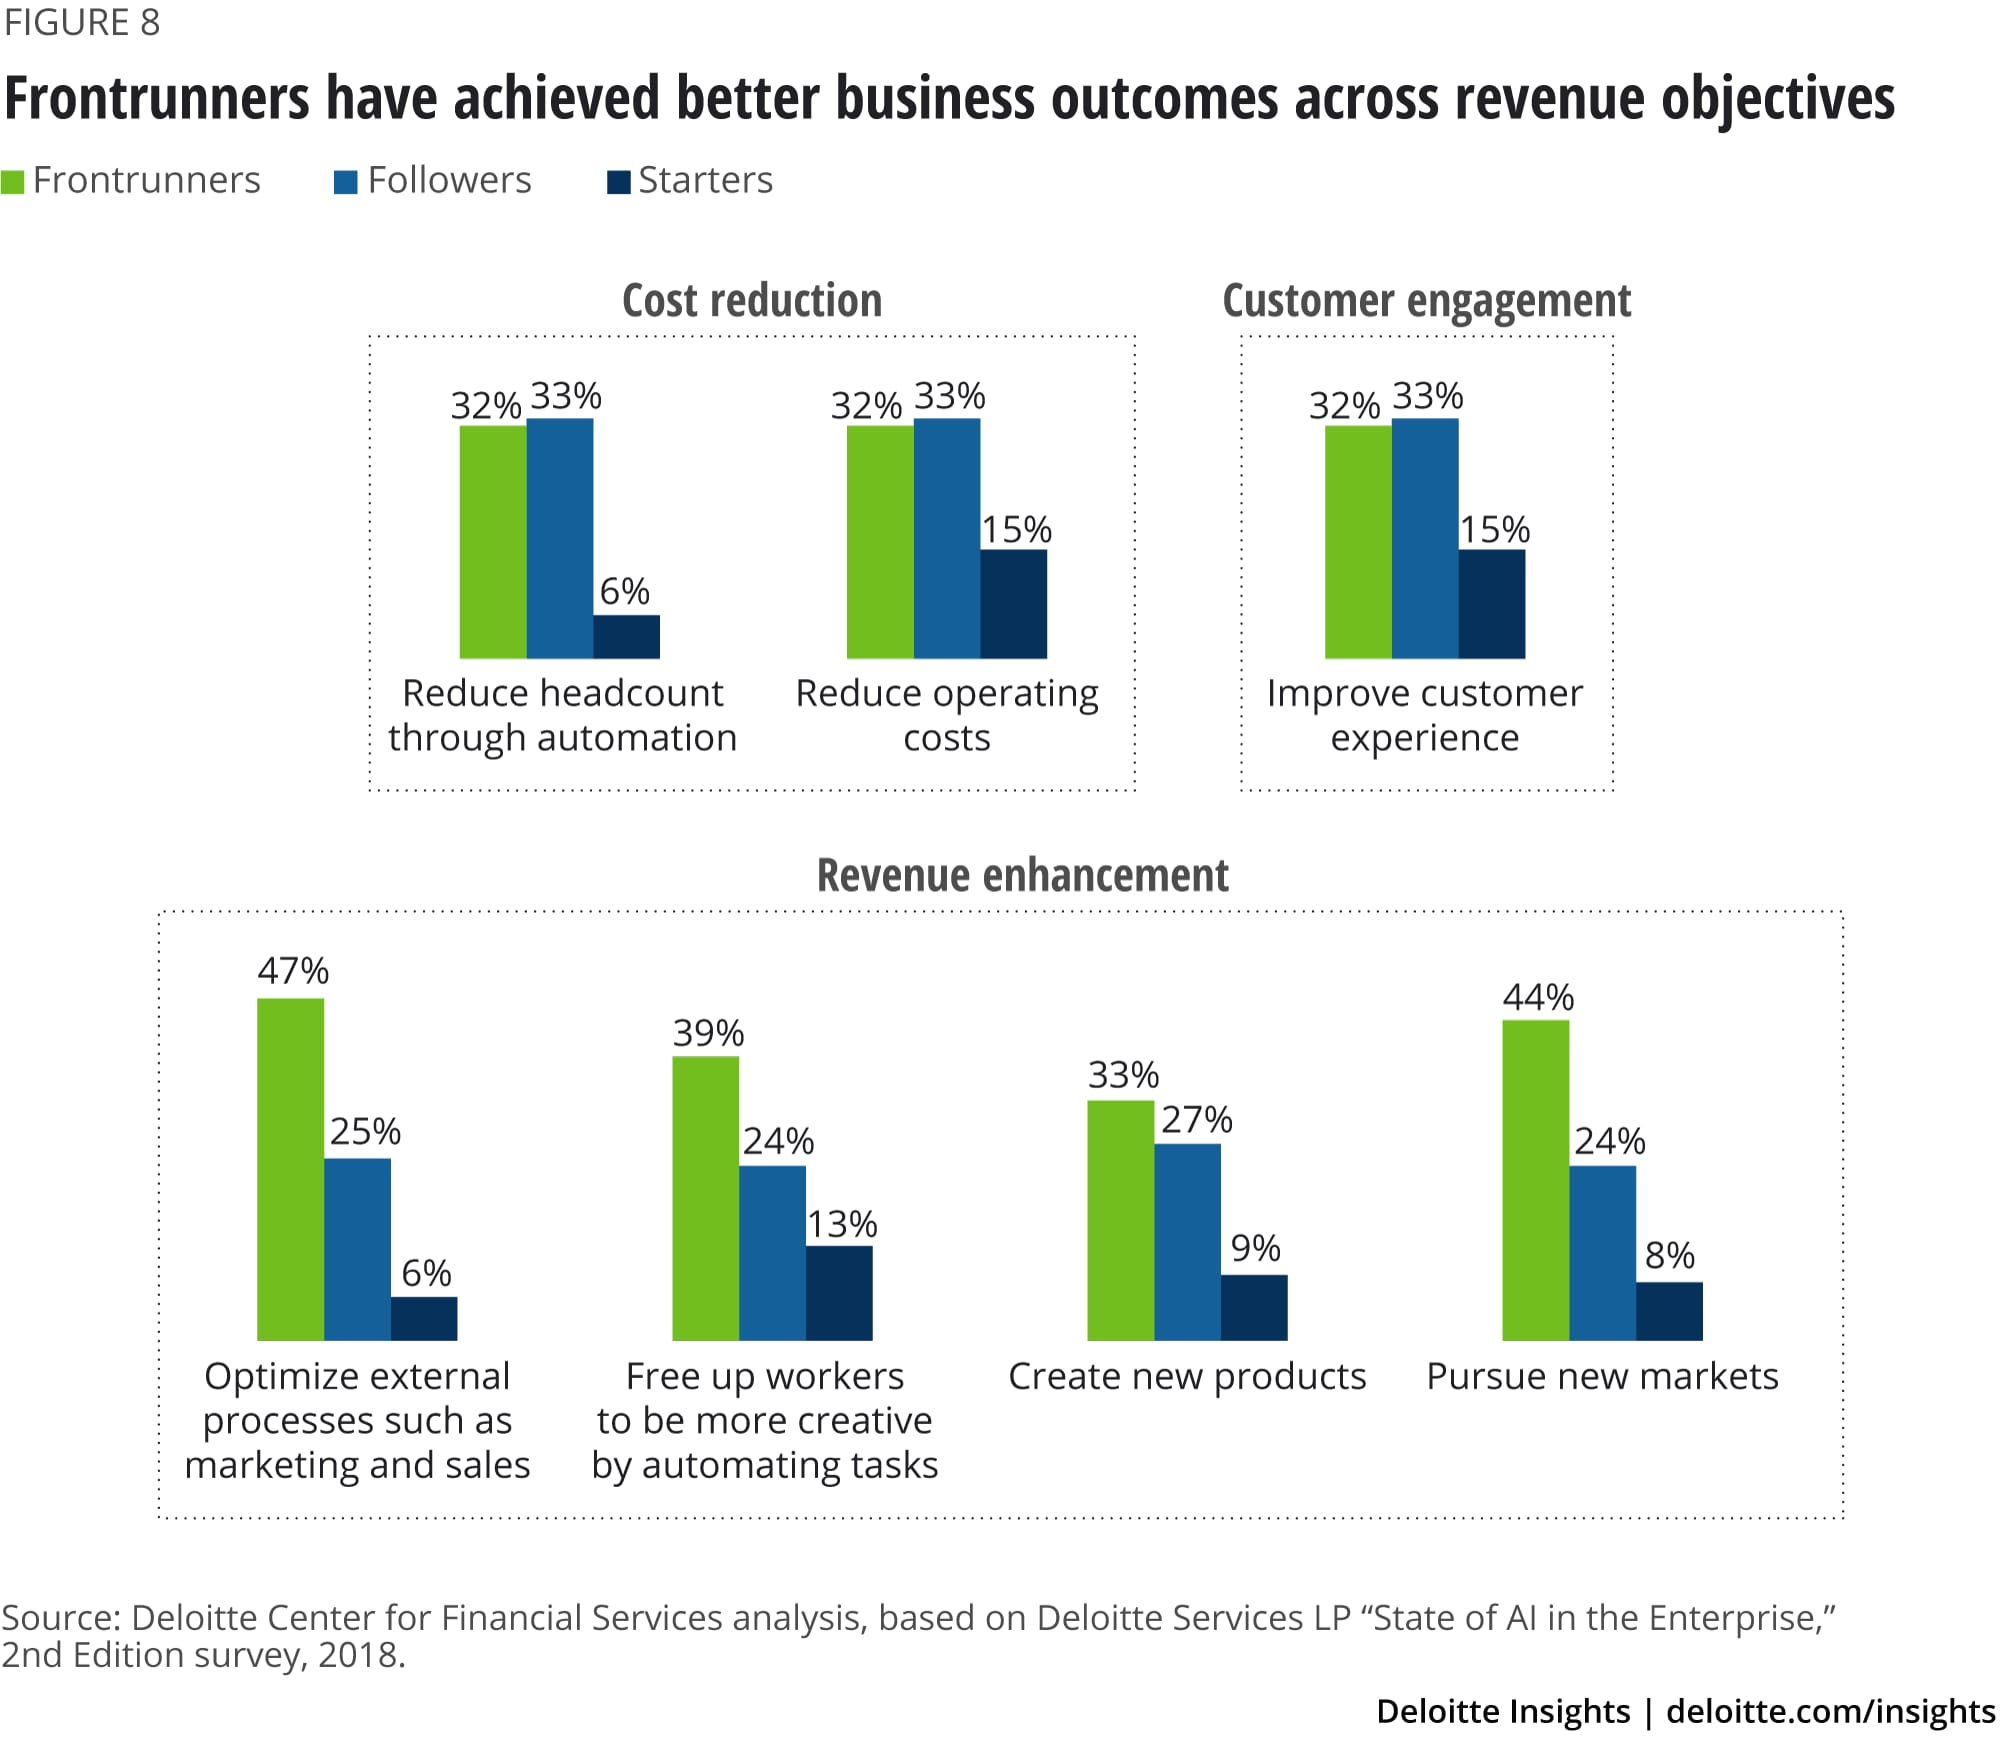 Frontrunners have achieved better business outcomes across revenue objectives